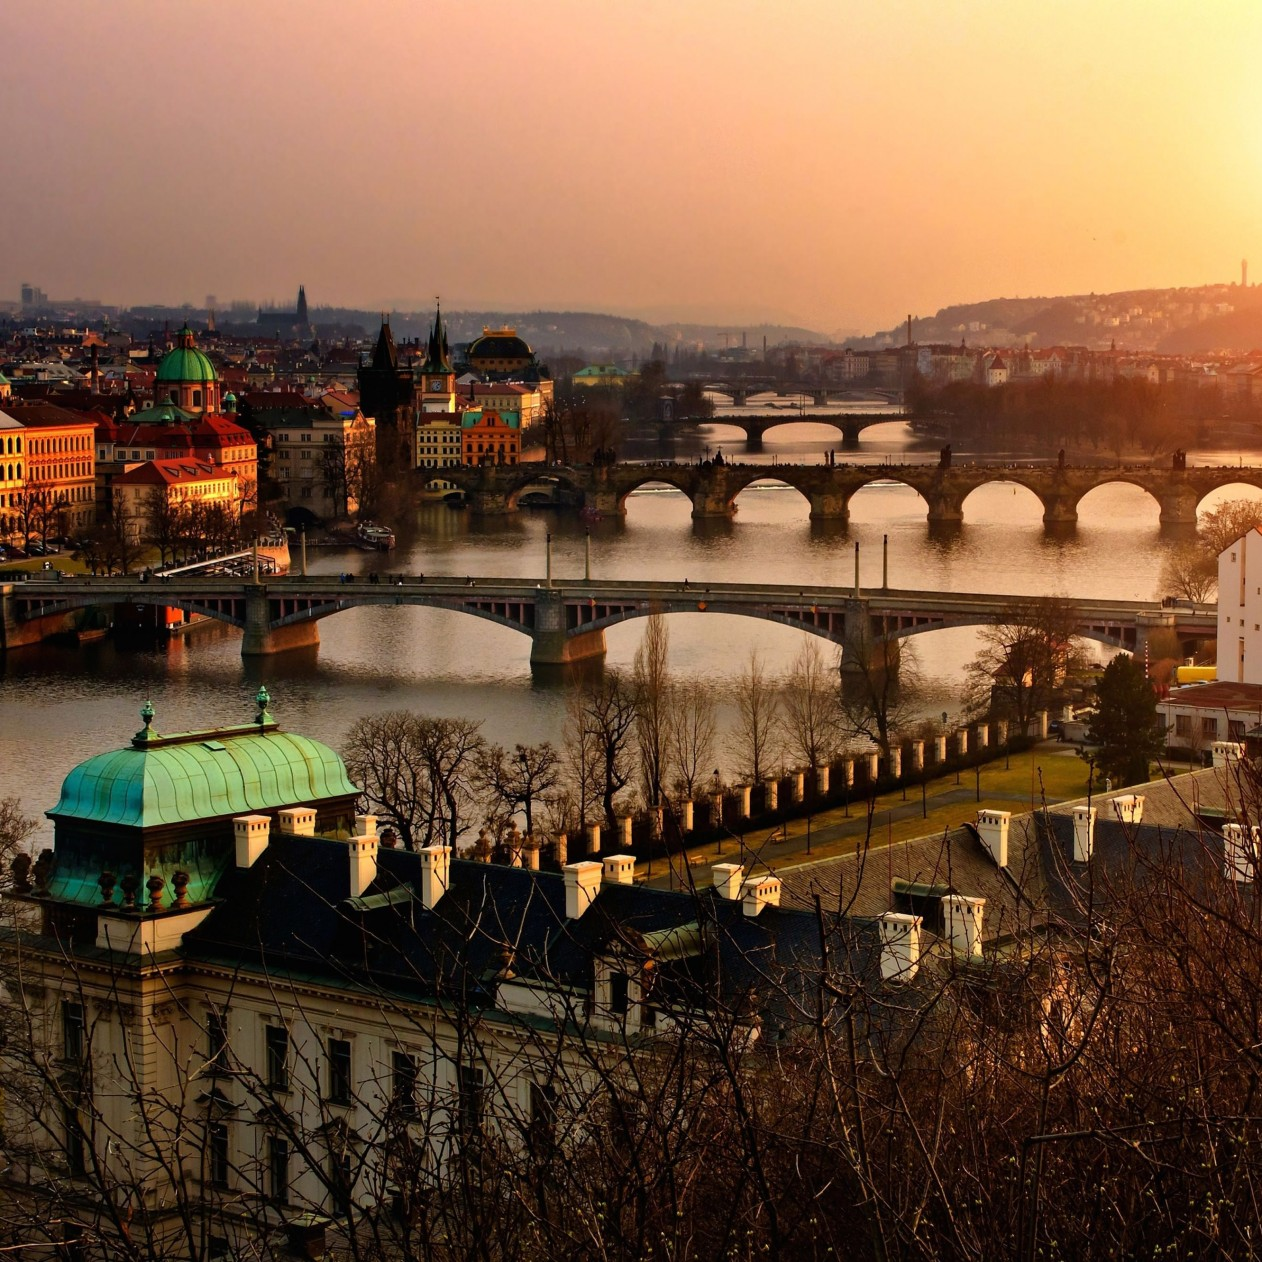 Vltava River in Prague Wallpaper for Apple iPad mini